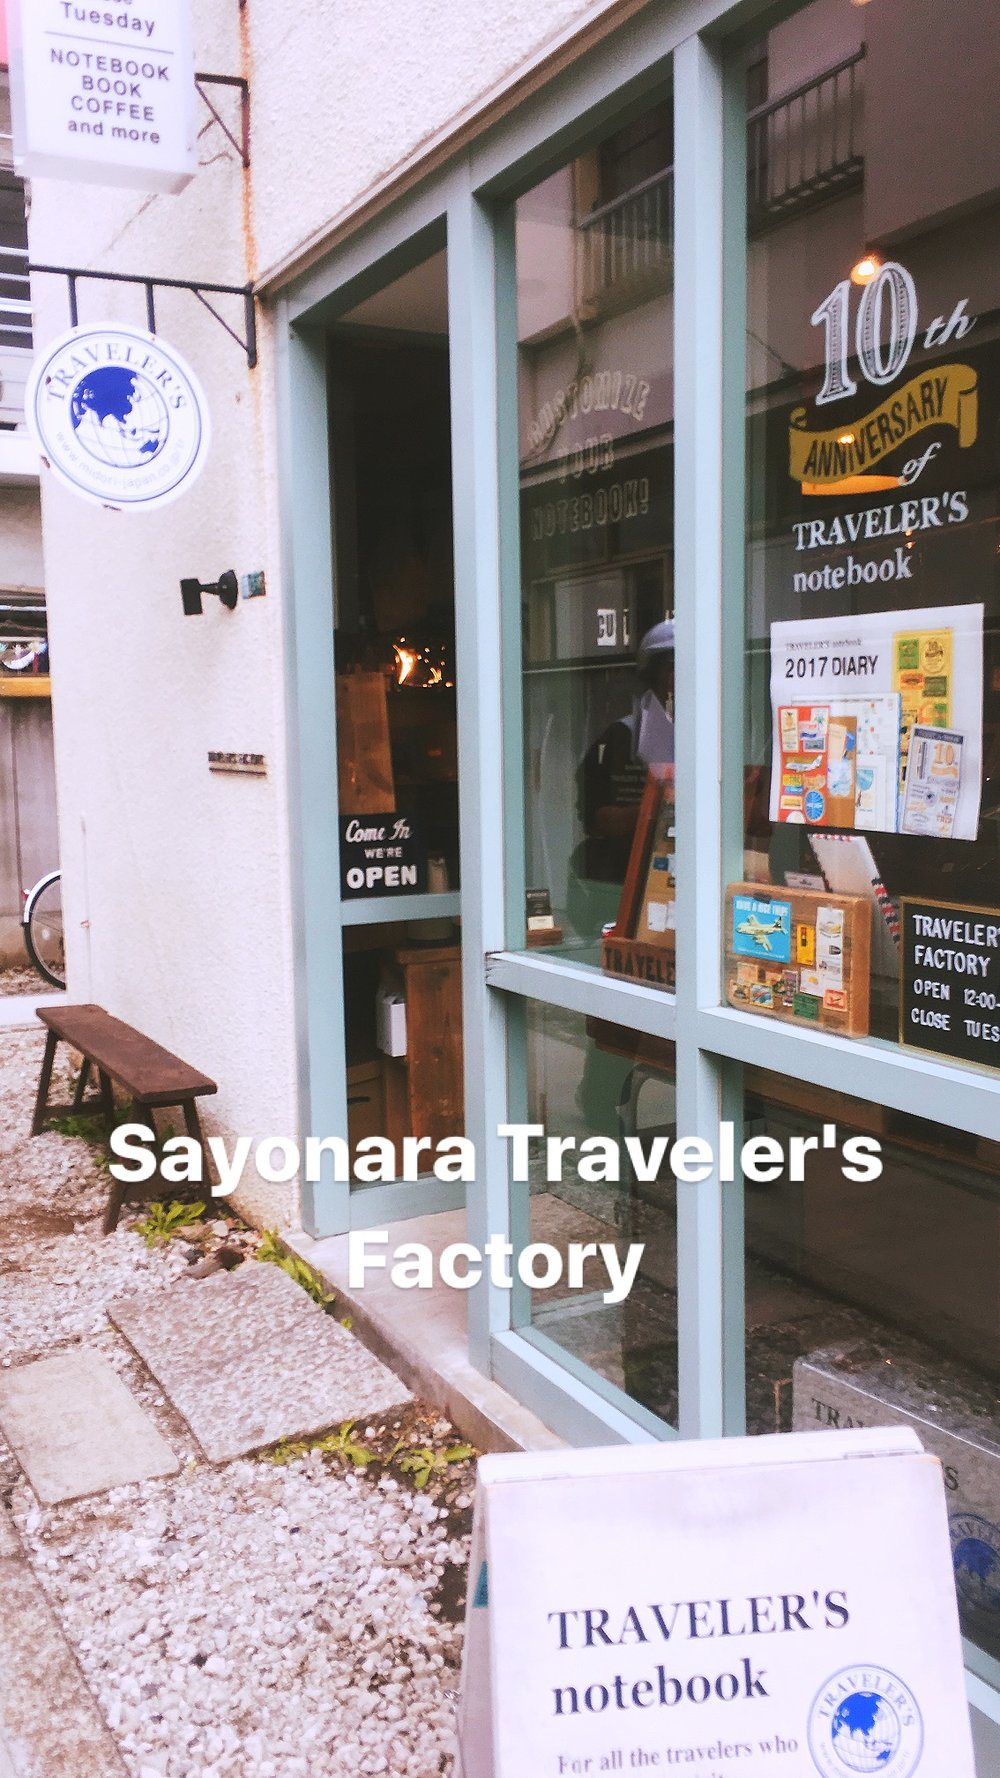 The Traveler's Factory store-front